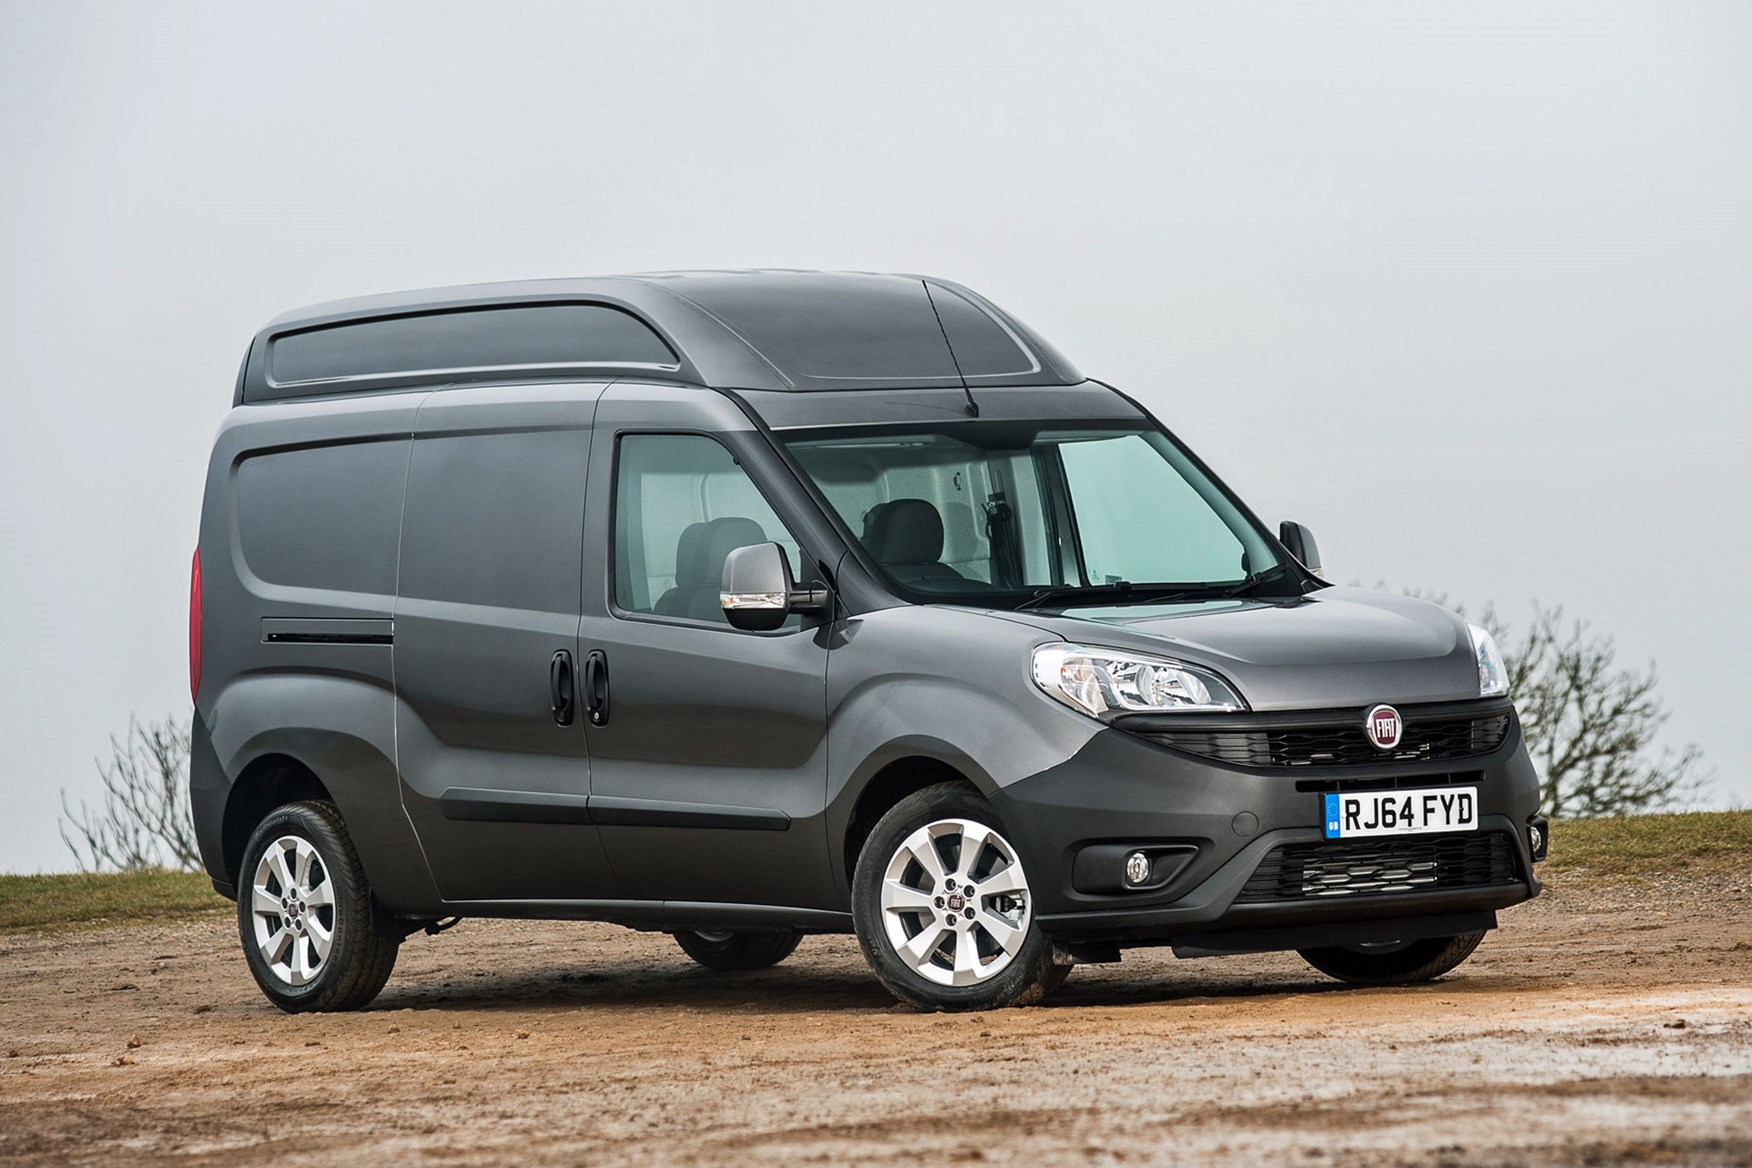 Fiat Doblo Maxi XL review - front view, grey, 2014